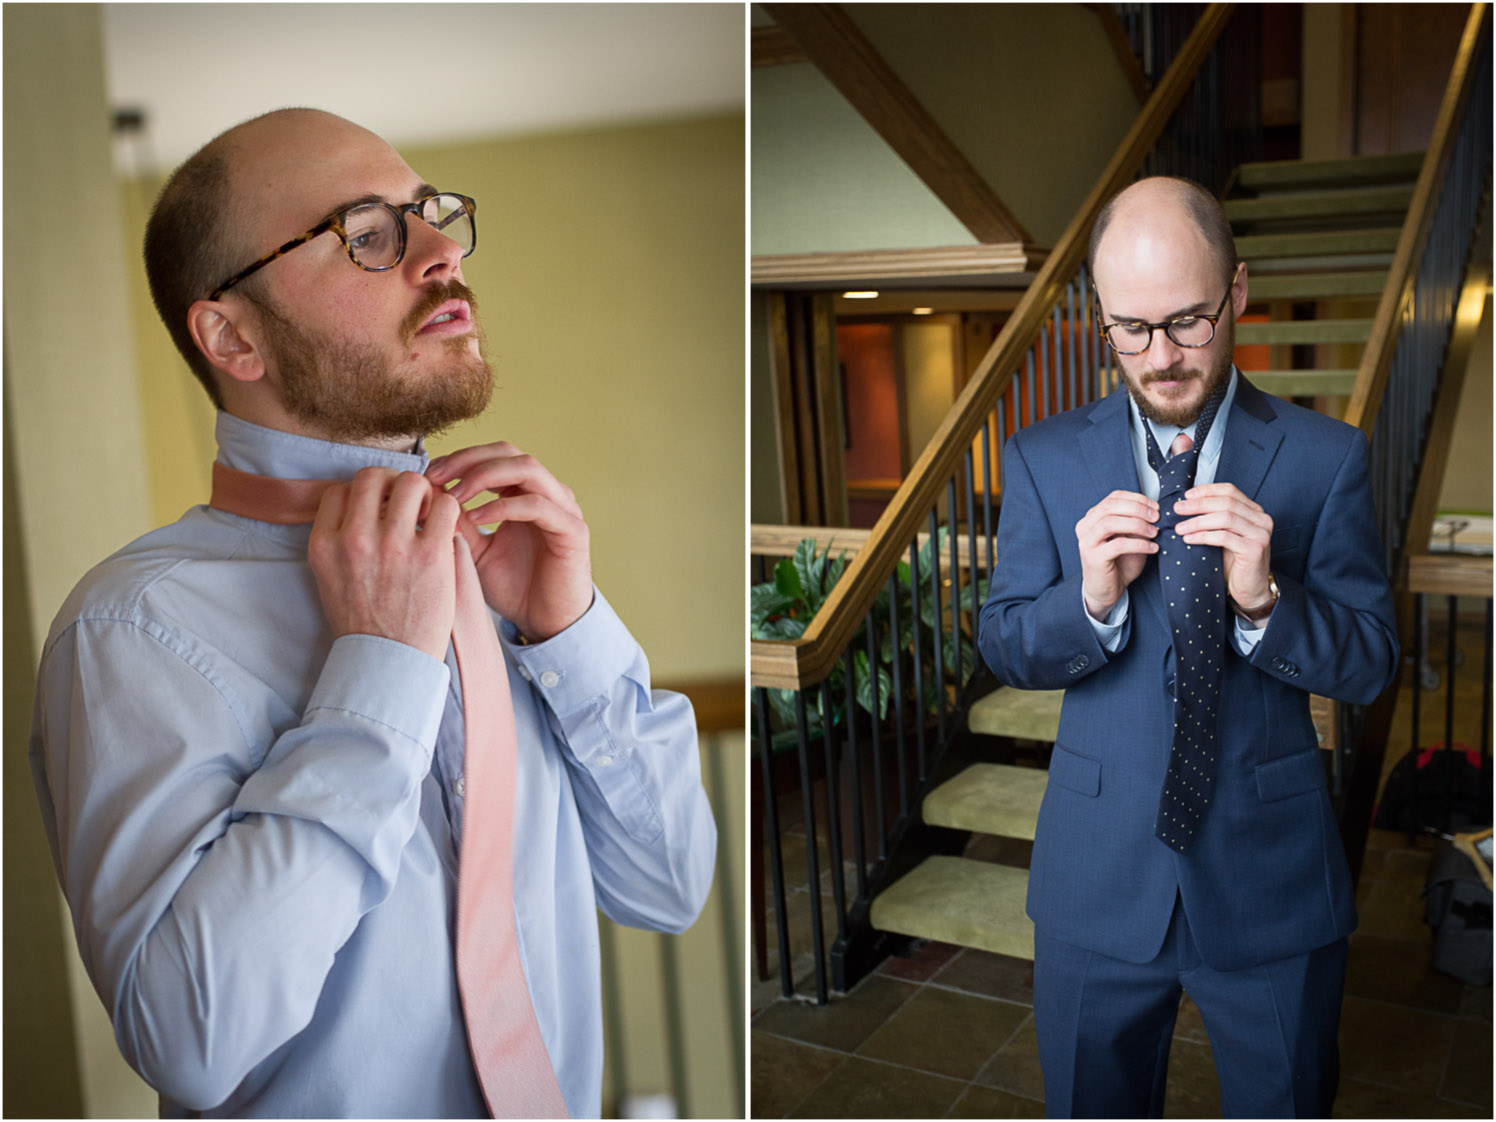 05-loring-green-minneapolis-minnesota-wedding-day-groom-getting-ready-tying-tie-mahonen-photography.jpg